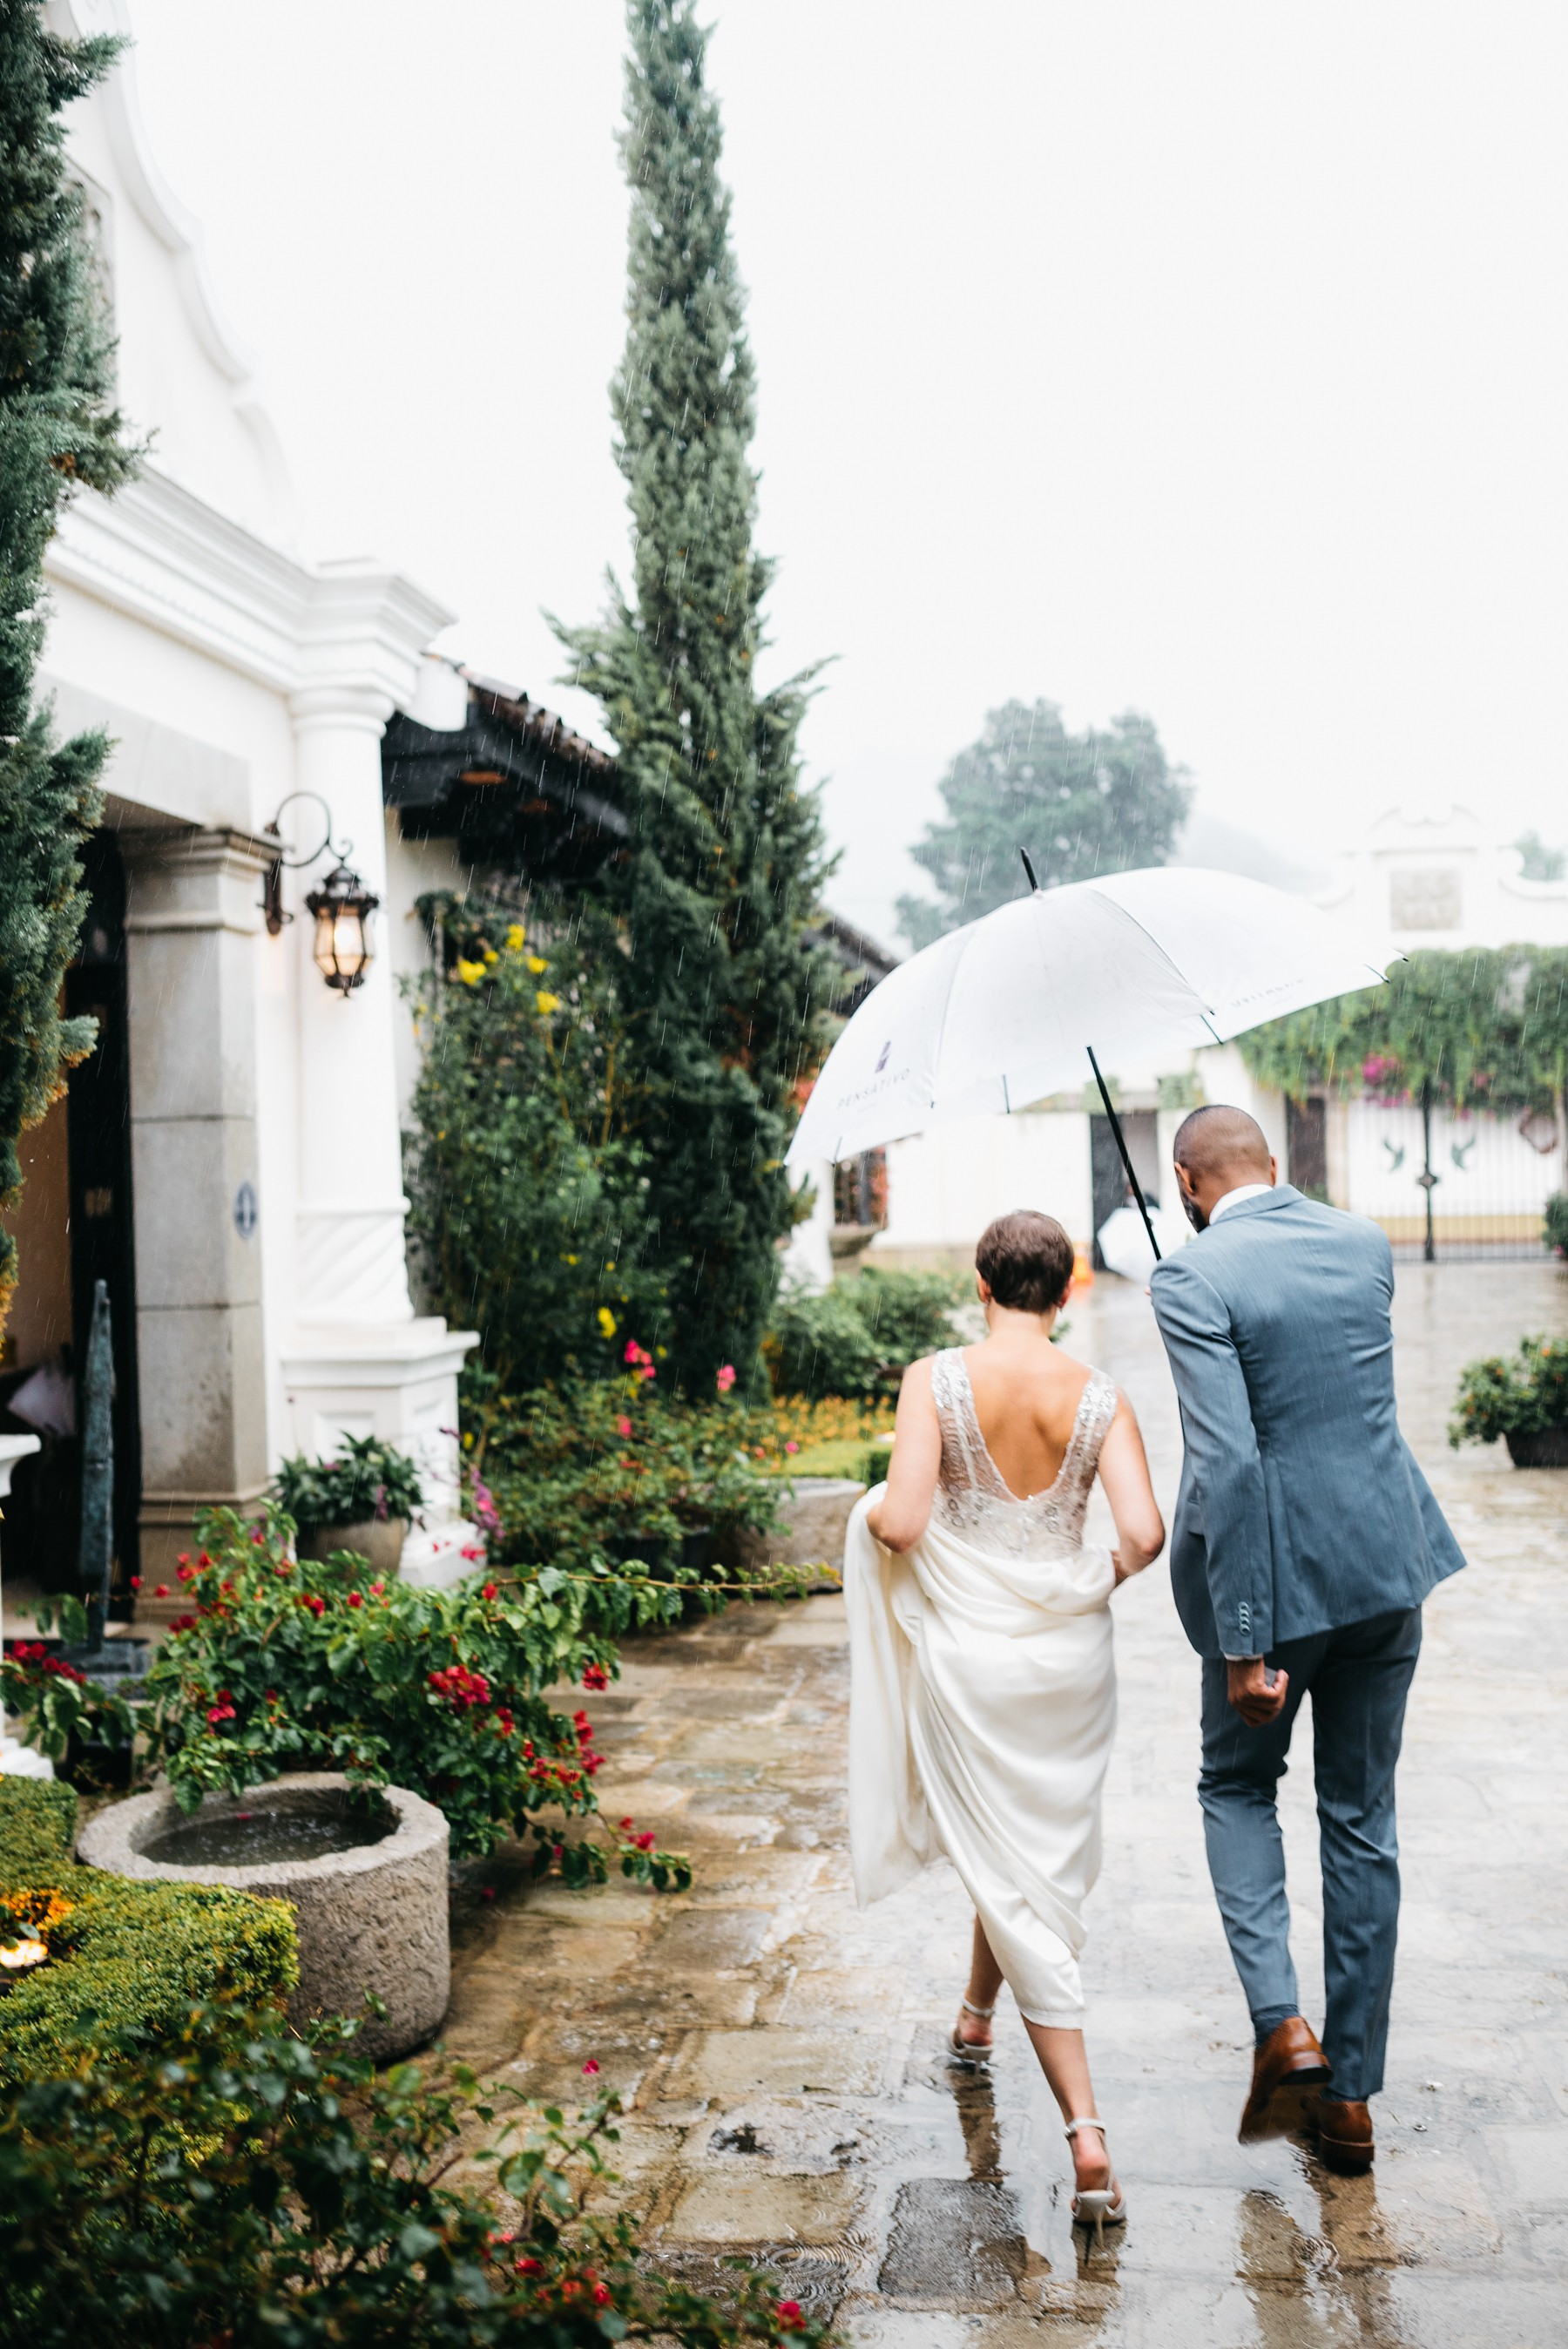 Rainy wedding day antigua guatemala